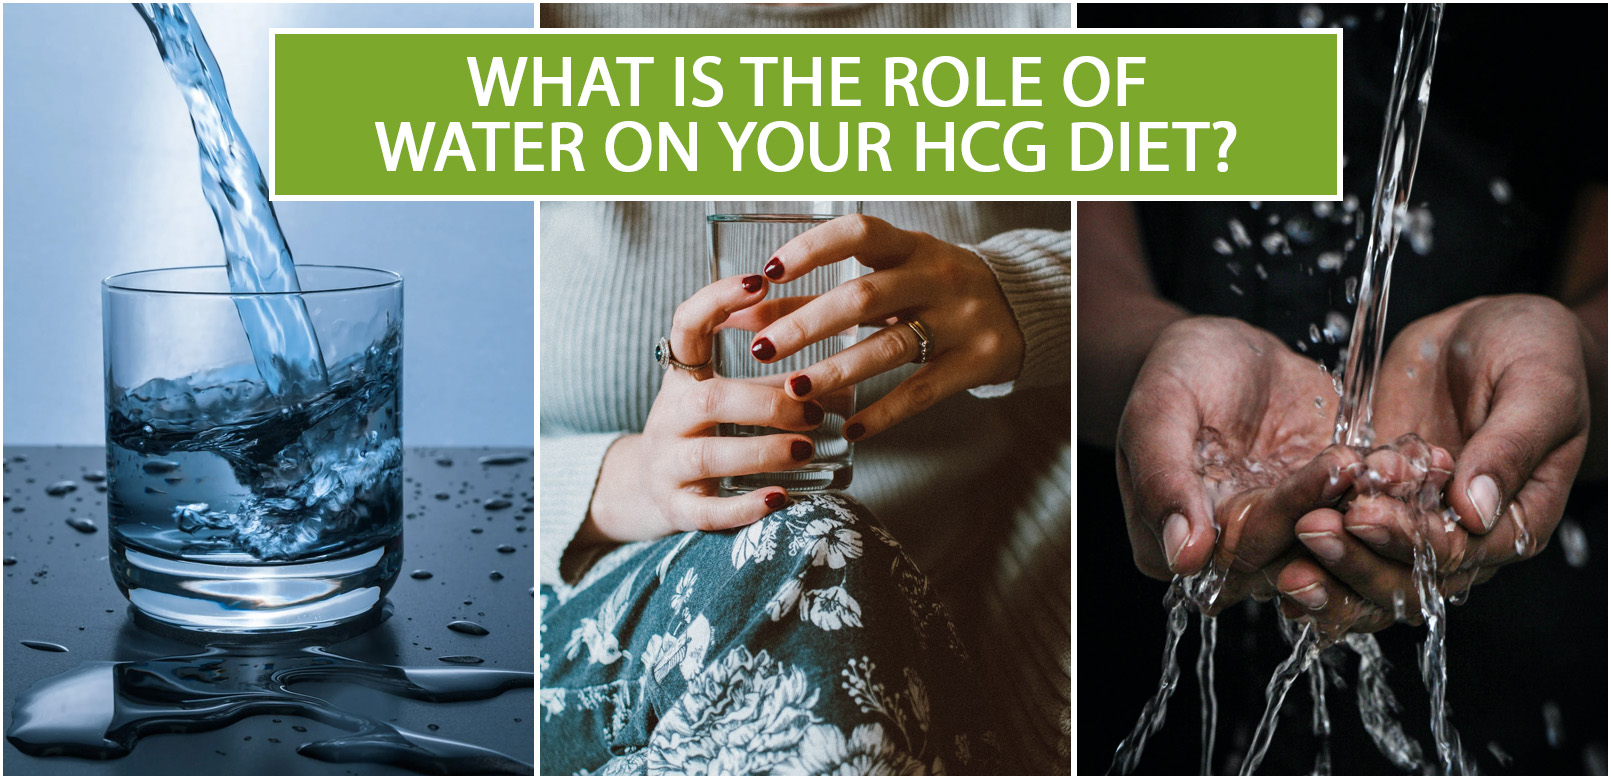 WHAT IS THE ROLE OF WATER ON YOUR HCG DIET